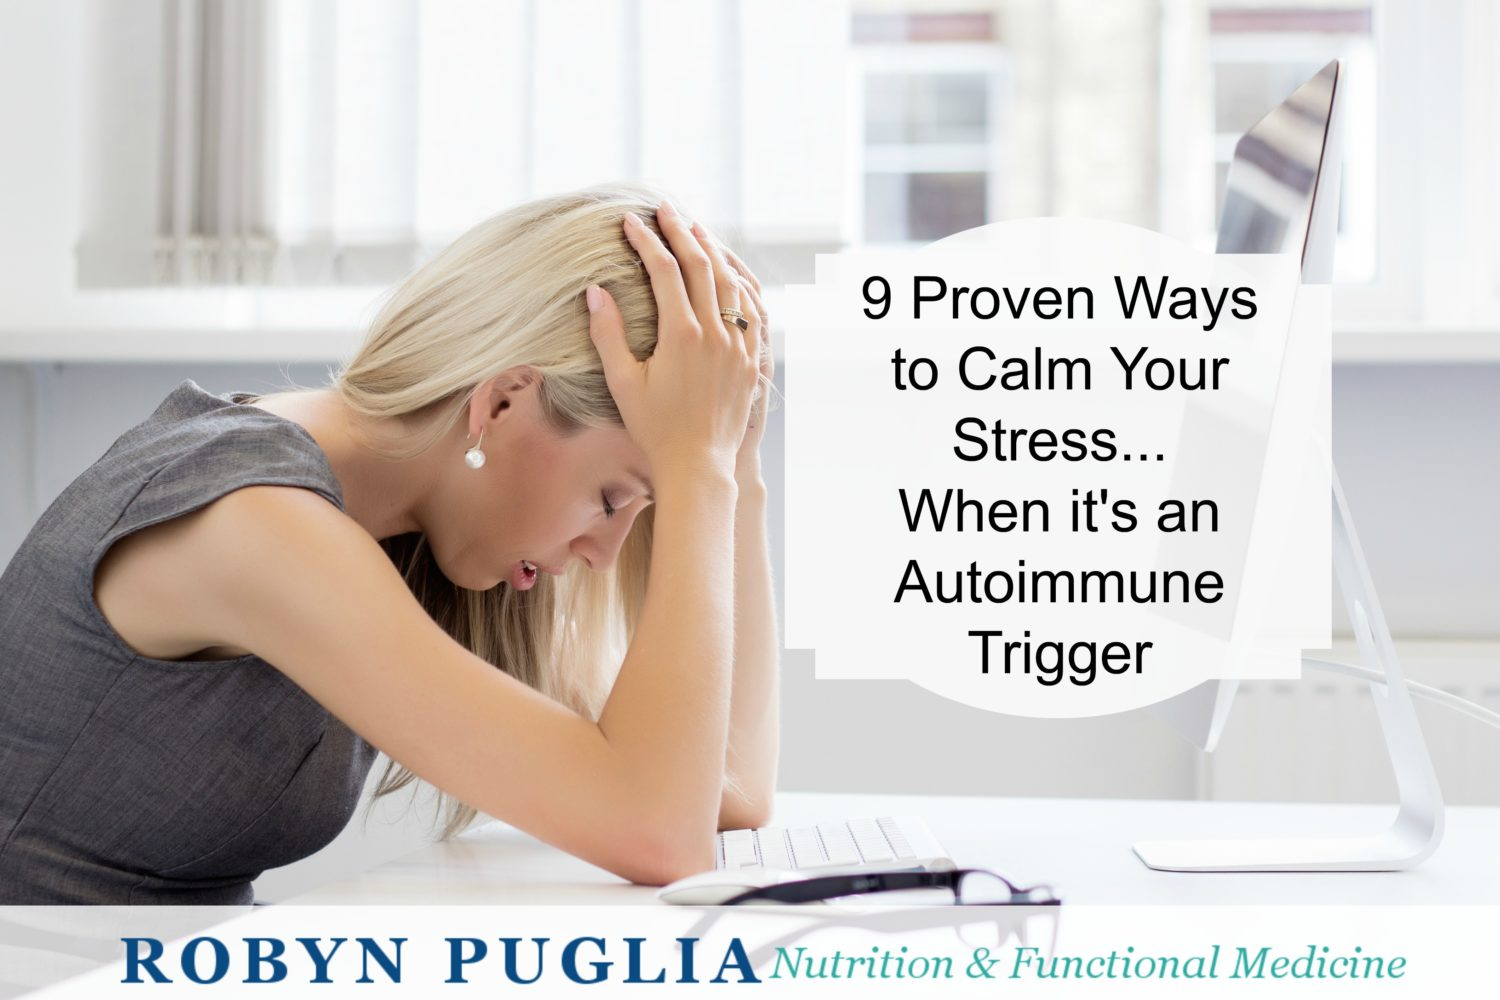 9 Proven Ways to Calm Stress when it's an Autoimmune Trigger